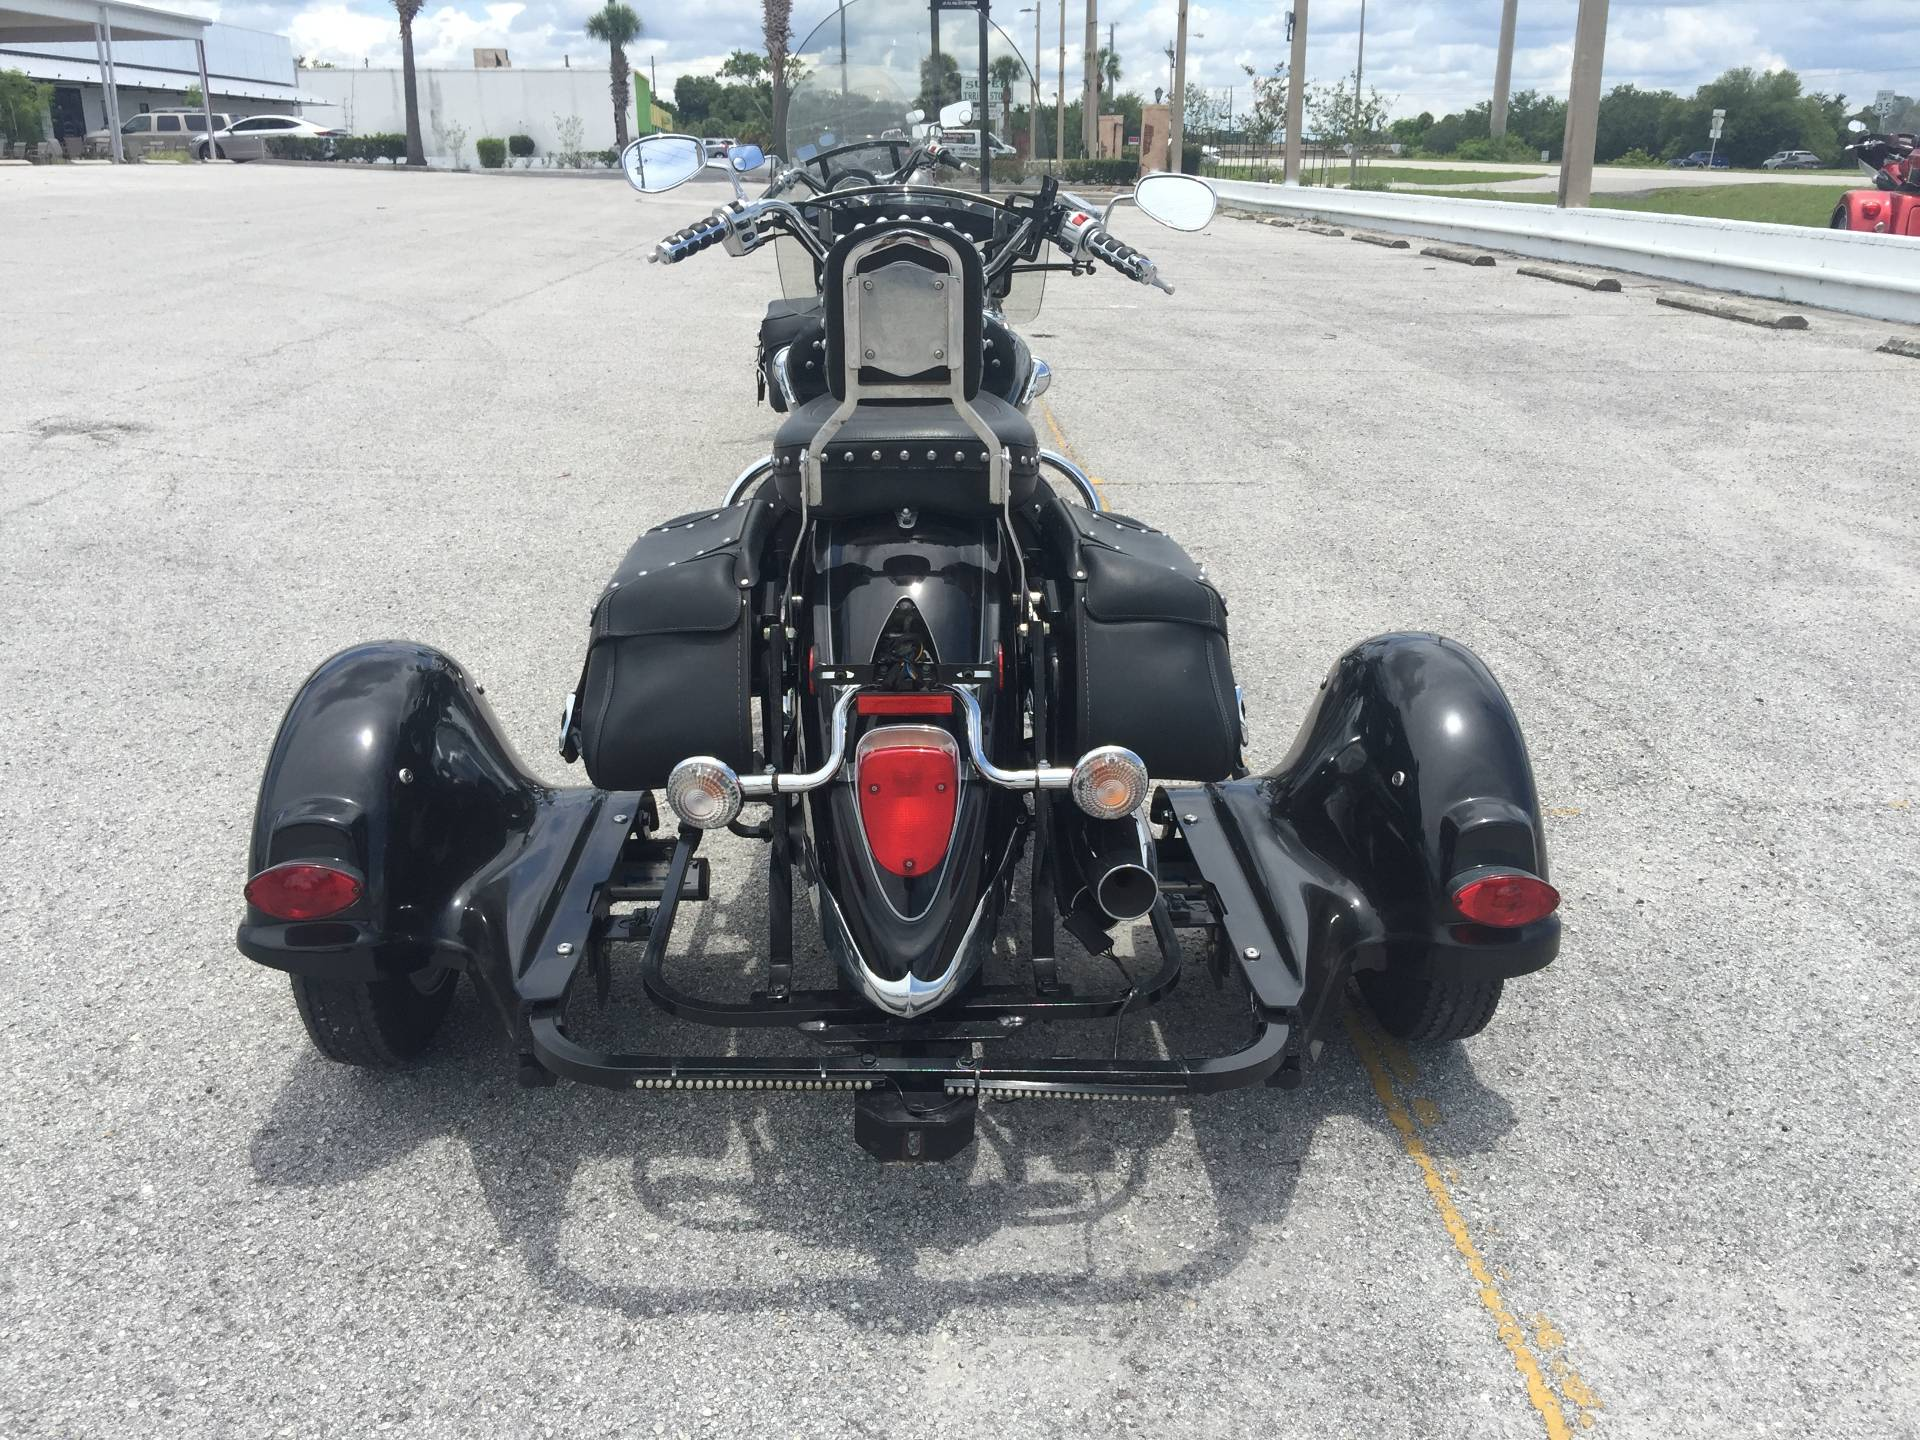 2008 Yamaha V-STAR 1100 SILVERADO WITH VOYAGER TRIKE in Eustis, Florida